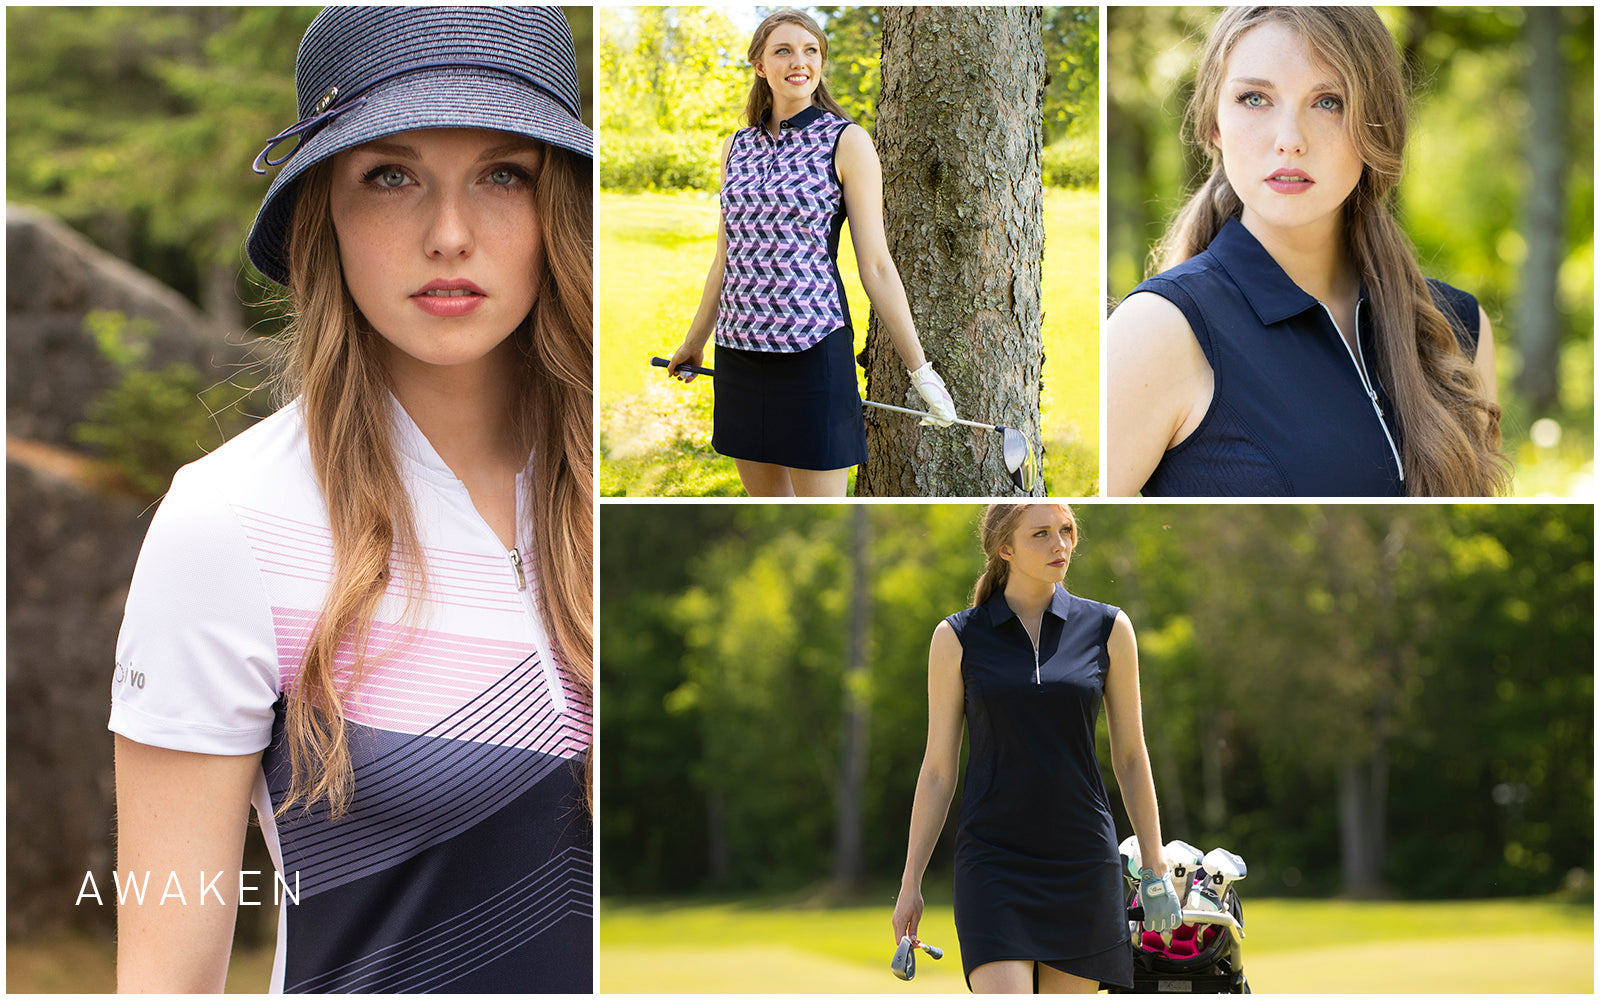 ALICIA MOCK GOLF 400 NAVY S AWAKEN AWAKEN,ALICIA MOCK,TOPS,SHORT SLEEVE,MOCK,400 NAVY,S AYANO POLO GOLF 400 NAVY AWAKEN AWAKEN,AYANO POLO,TOPS,SLEEVELESS,POLO,400 NAVY,ARIEL DRESS GOLF 400 NAVY S